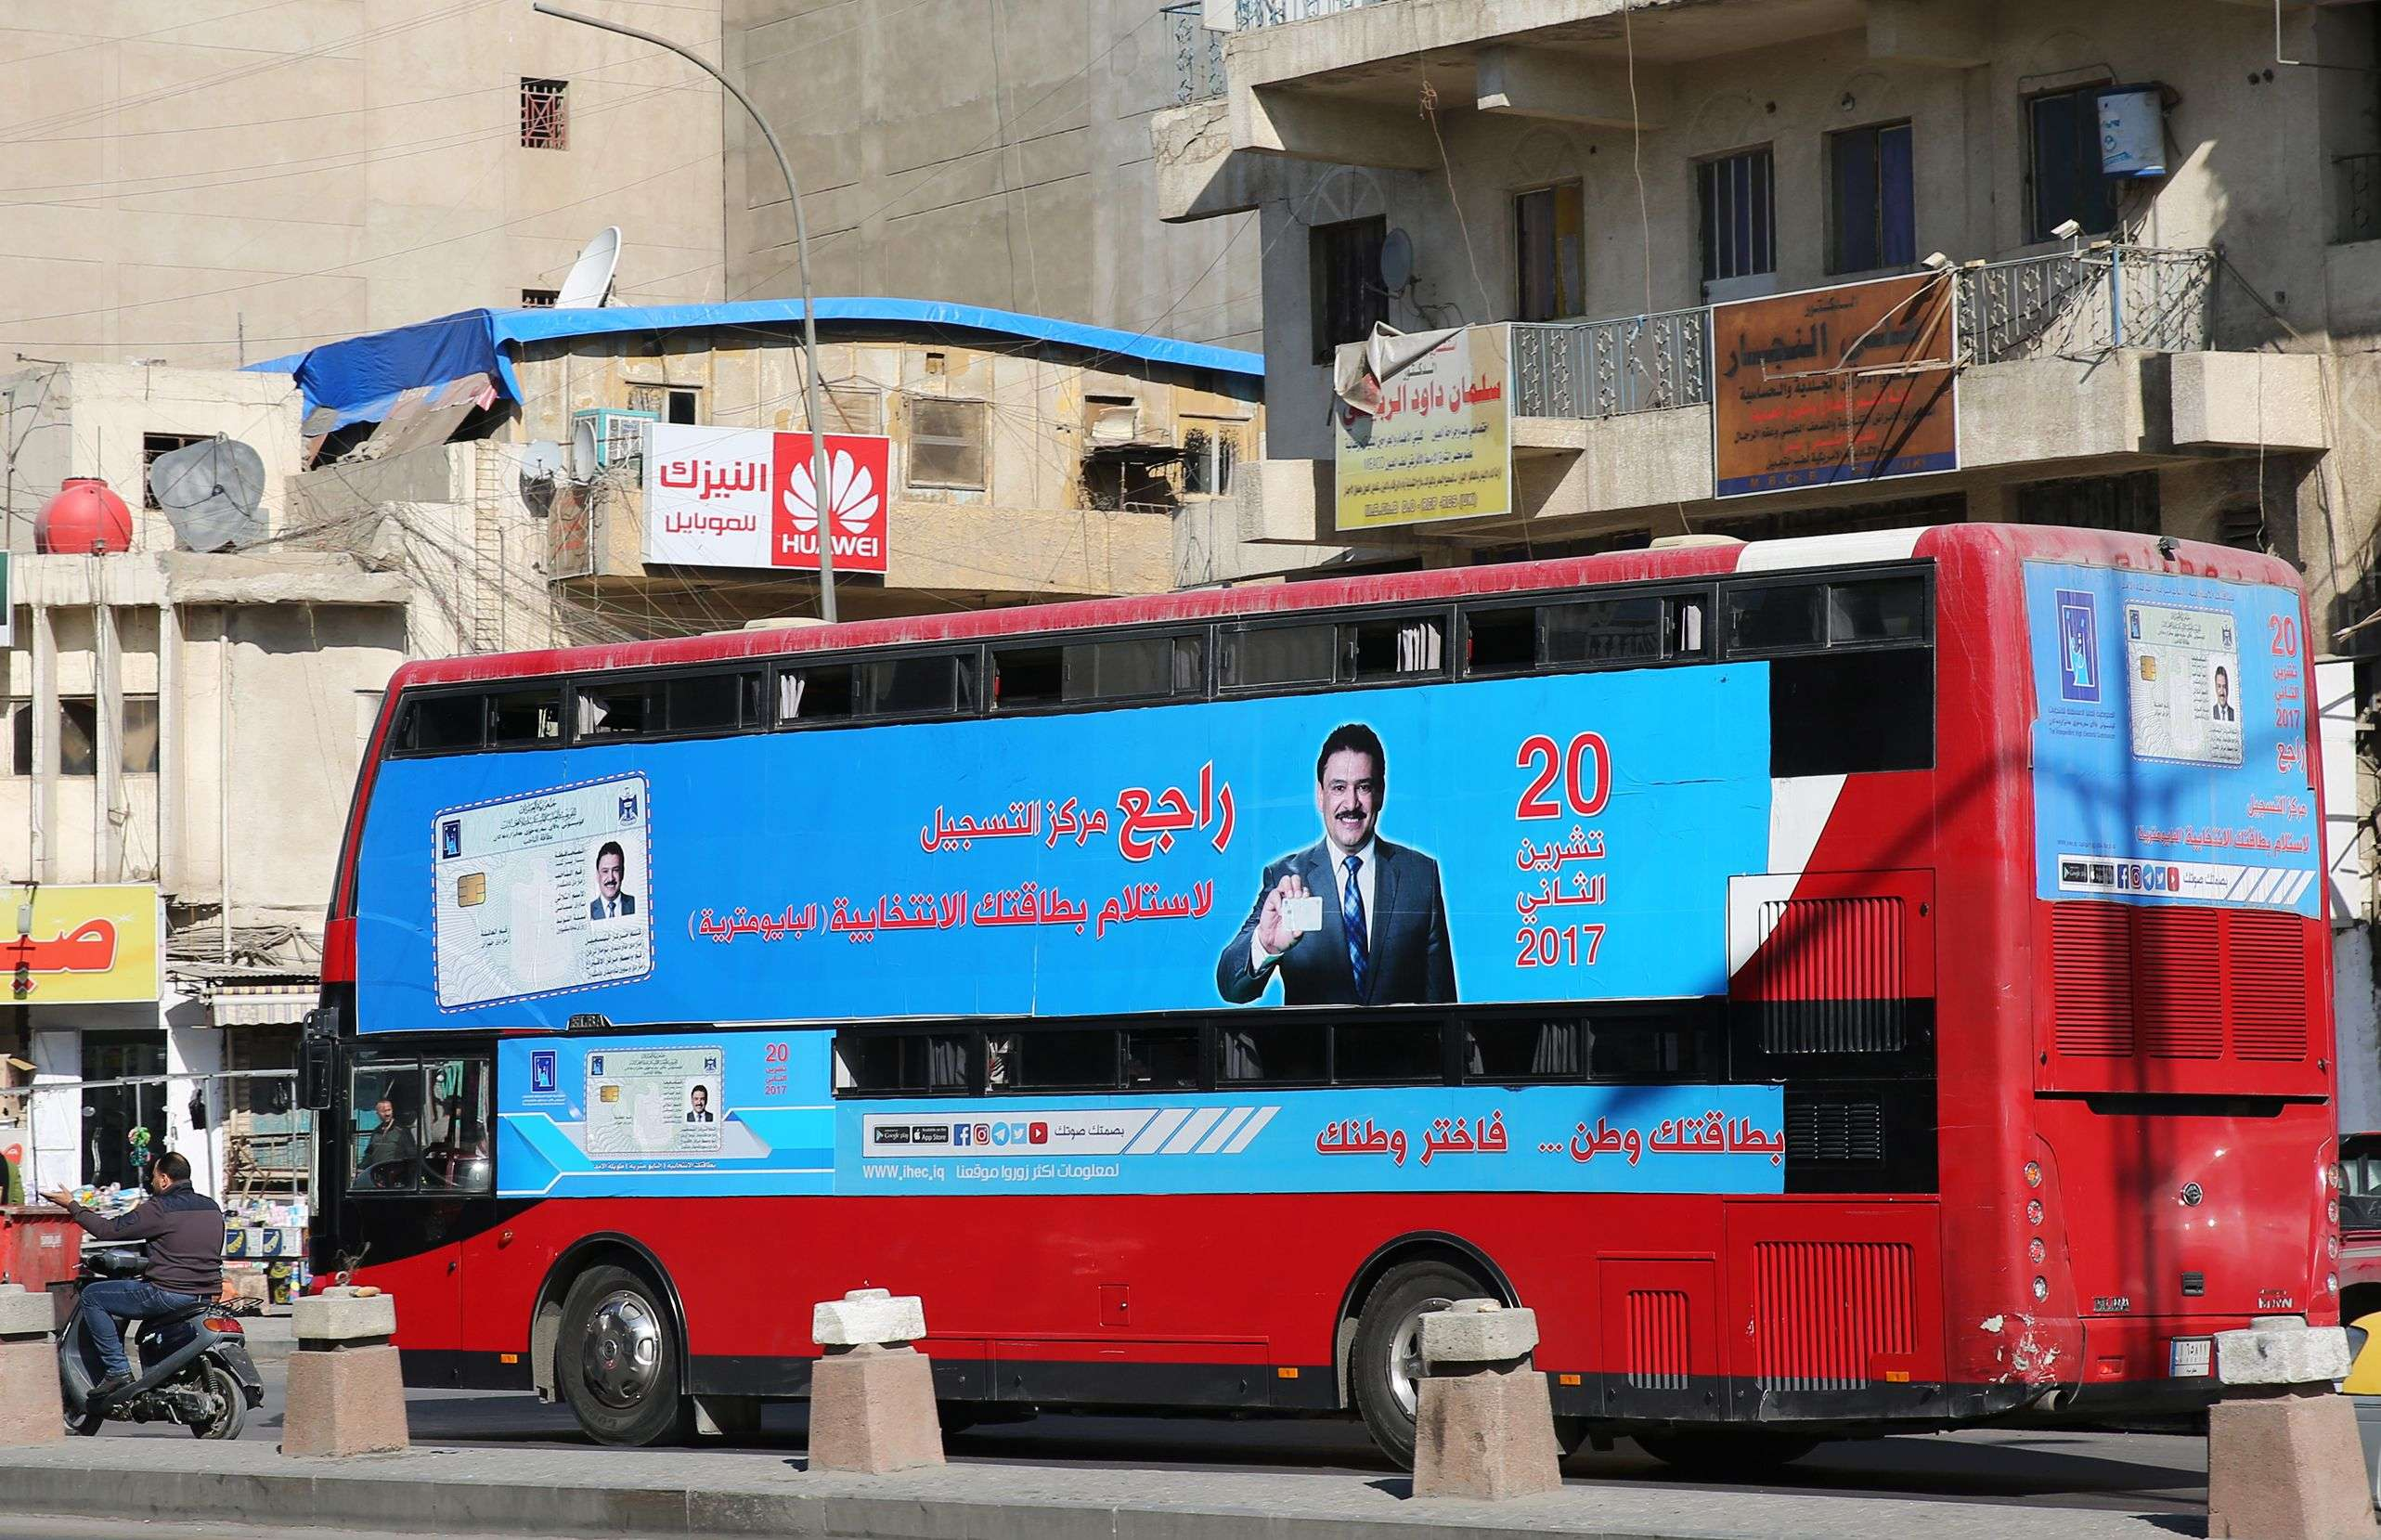 A bus displays a poster advising people to check about their voting information ahead of Iraq's parliamentary elections Baghdad. (AFP)